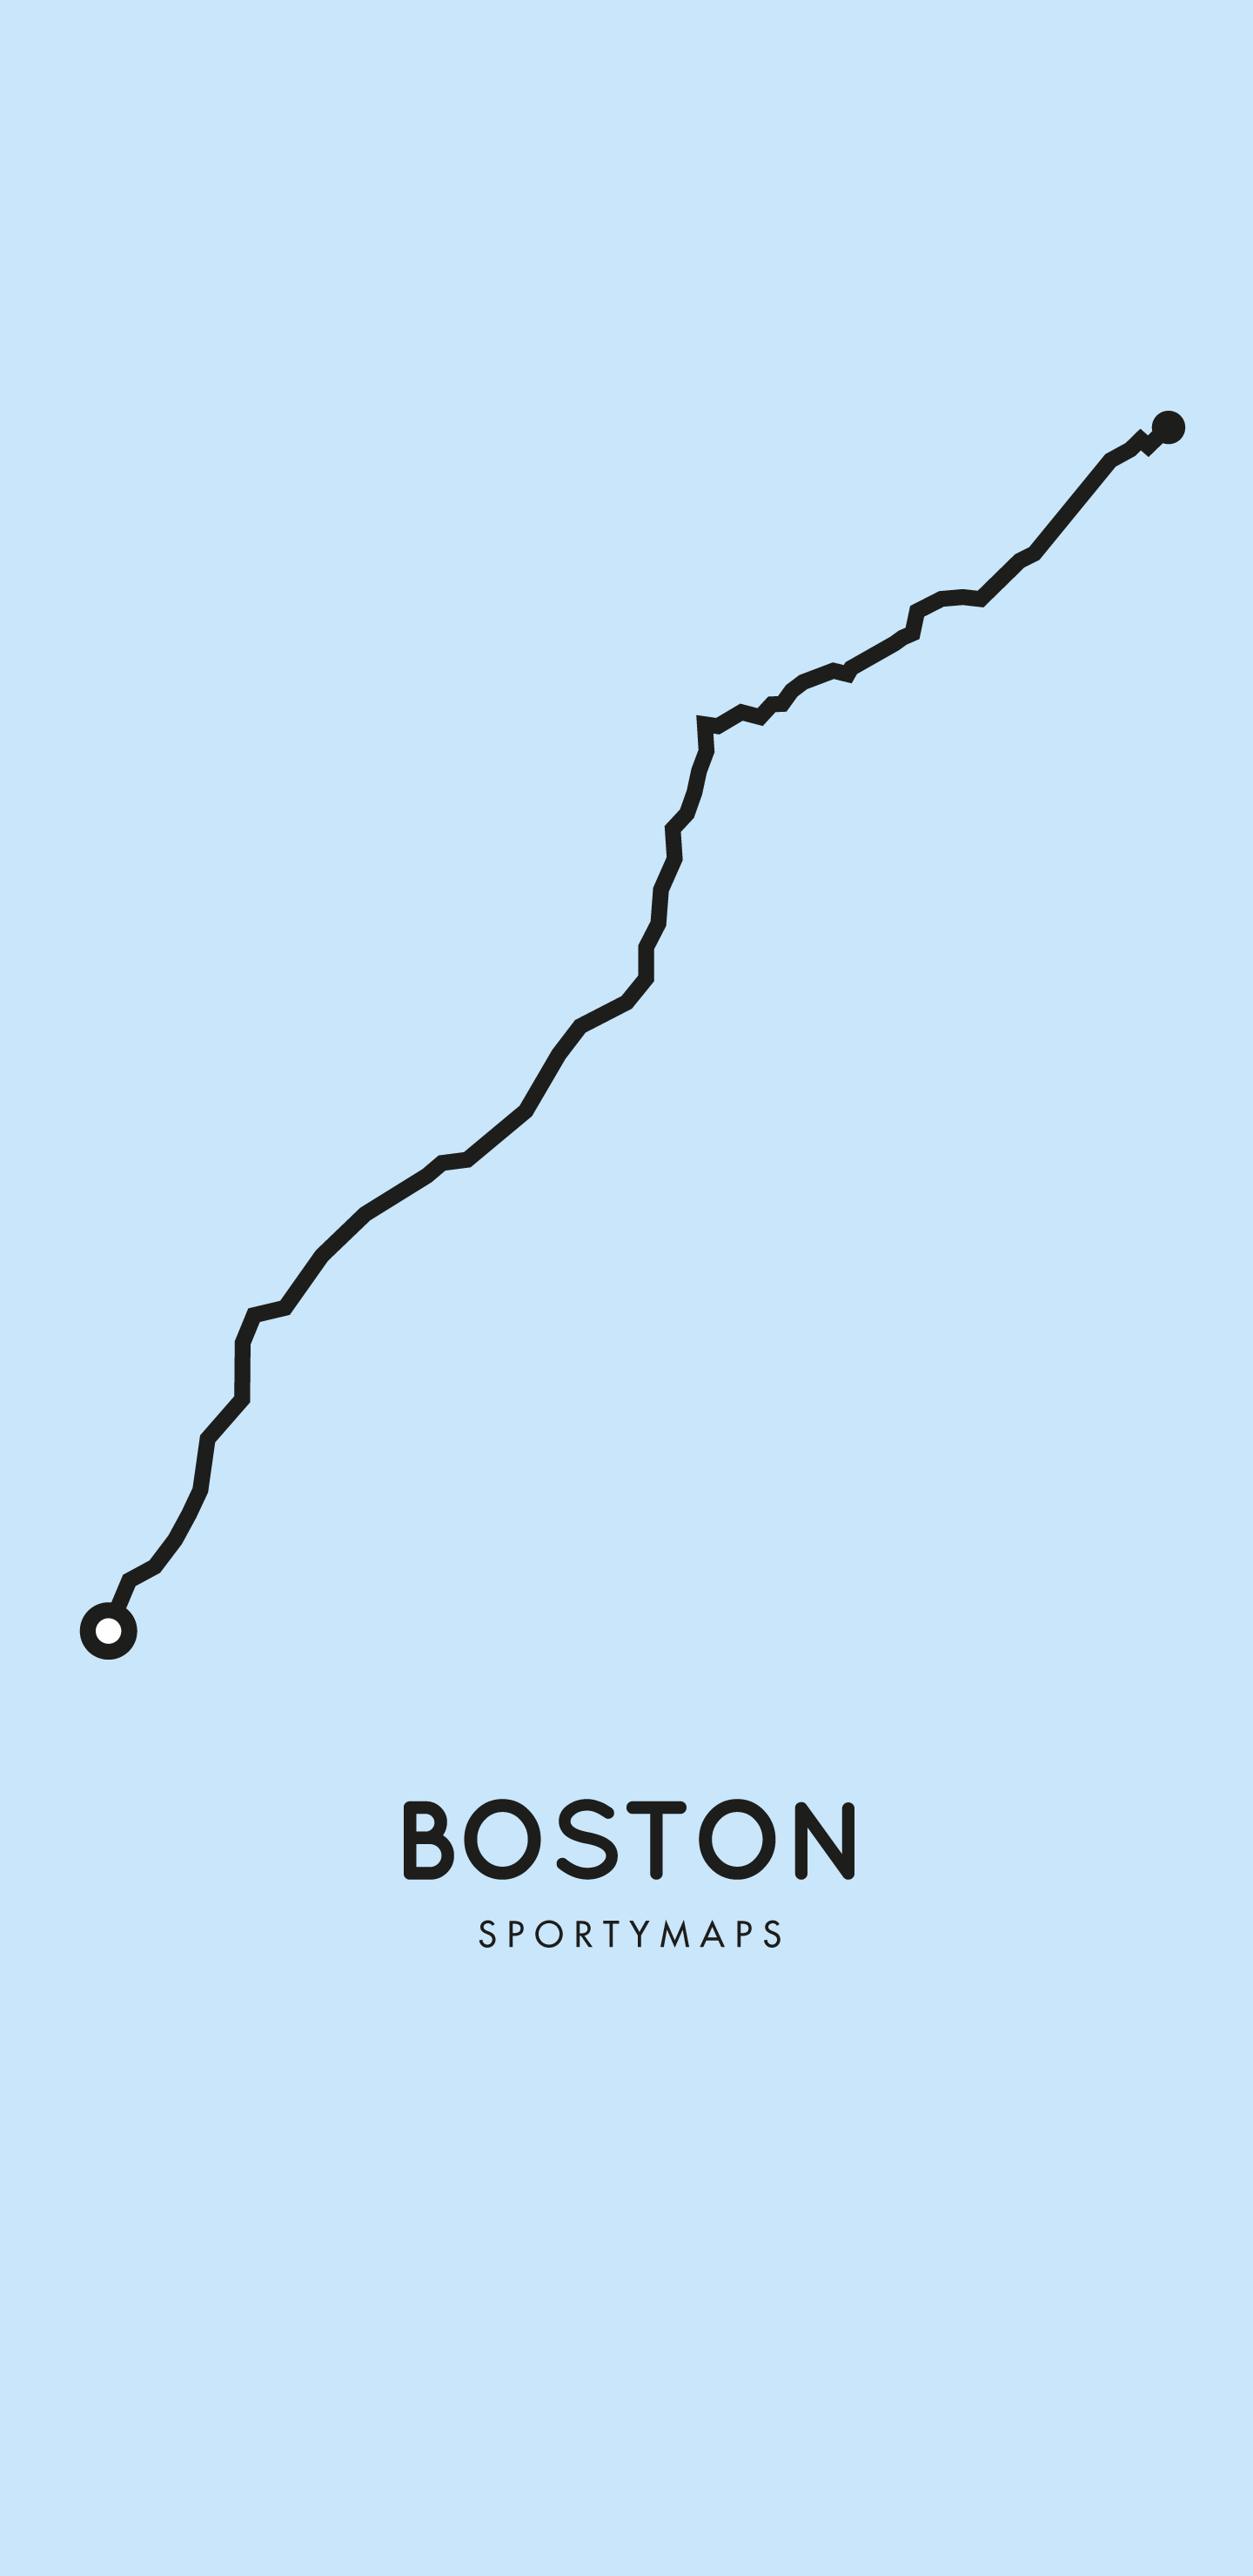 Sportymaps-Boston-marathon-blue